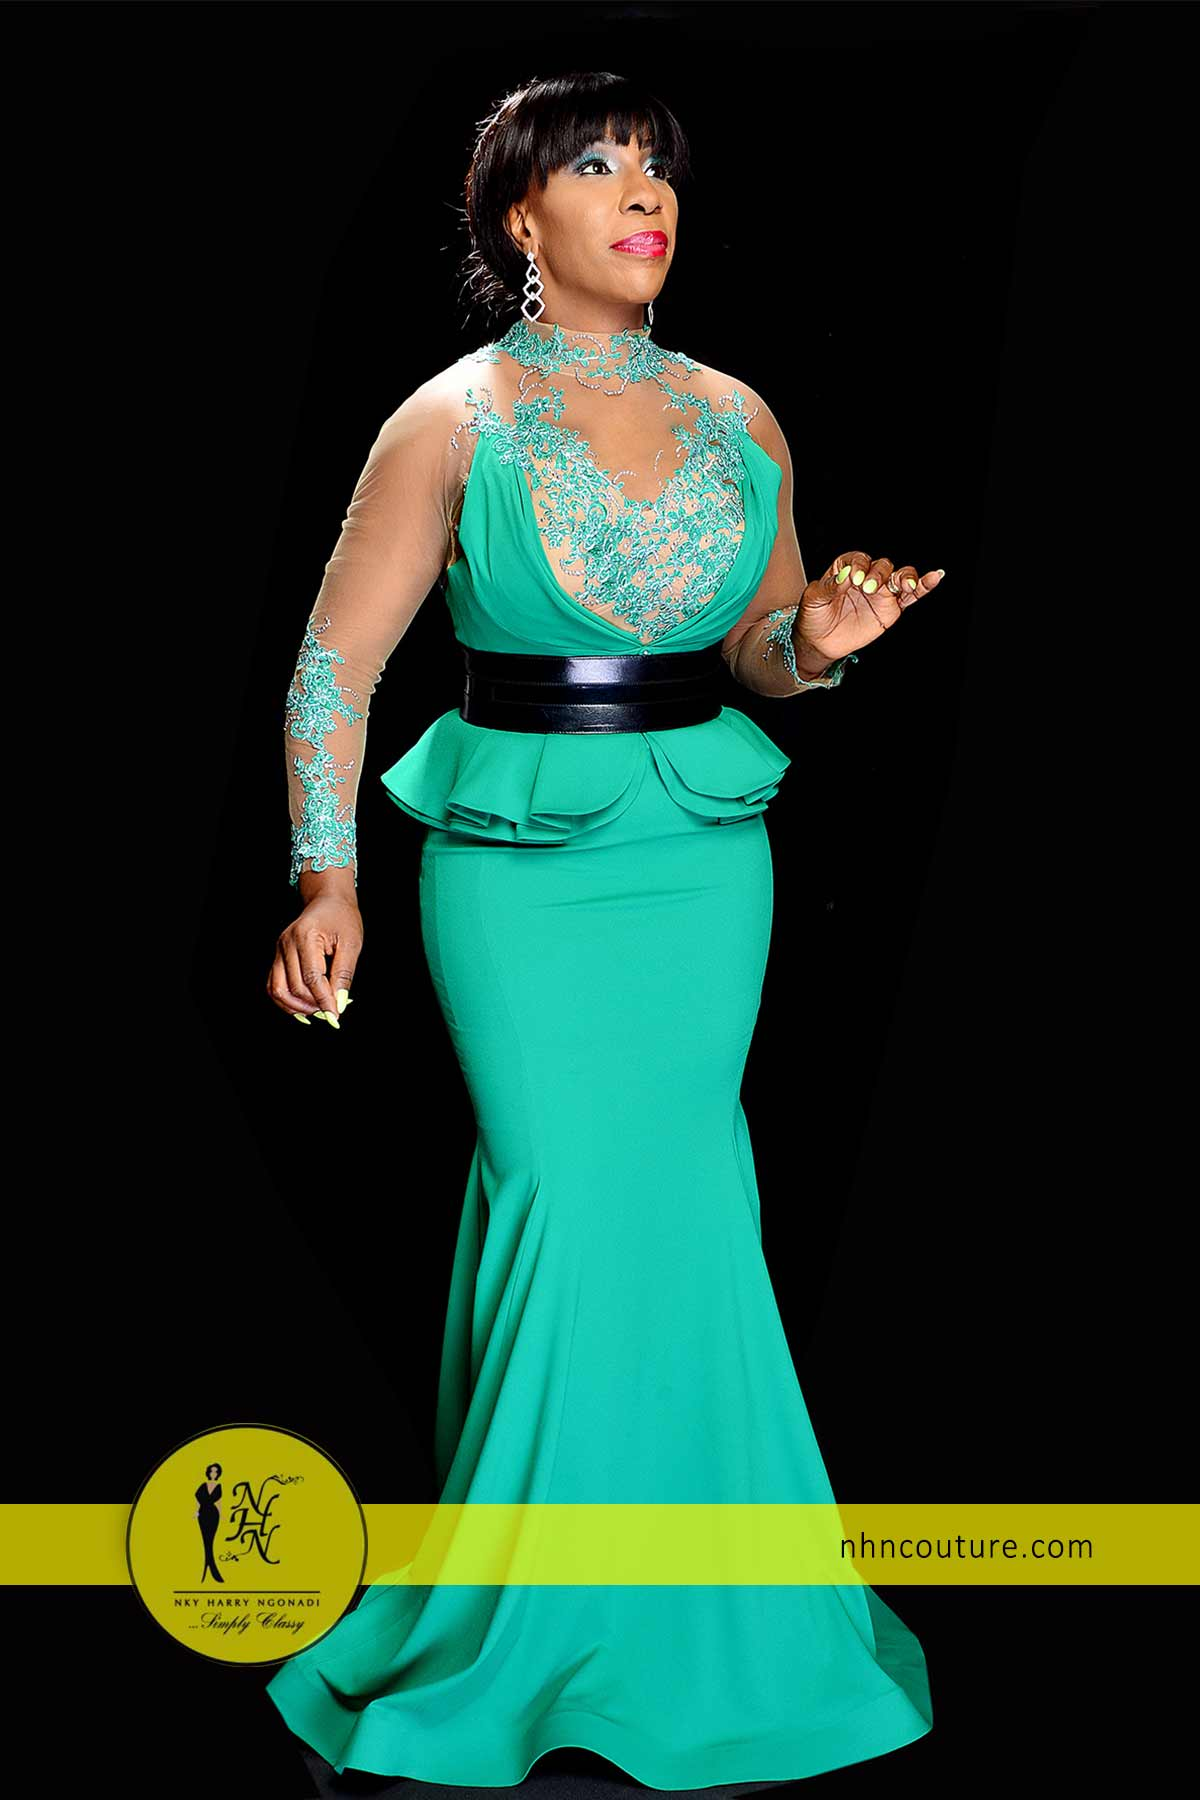 NHN-Couture-in-Fouad-Sarkis-Green-Evening-Gown-2